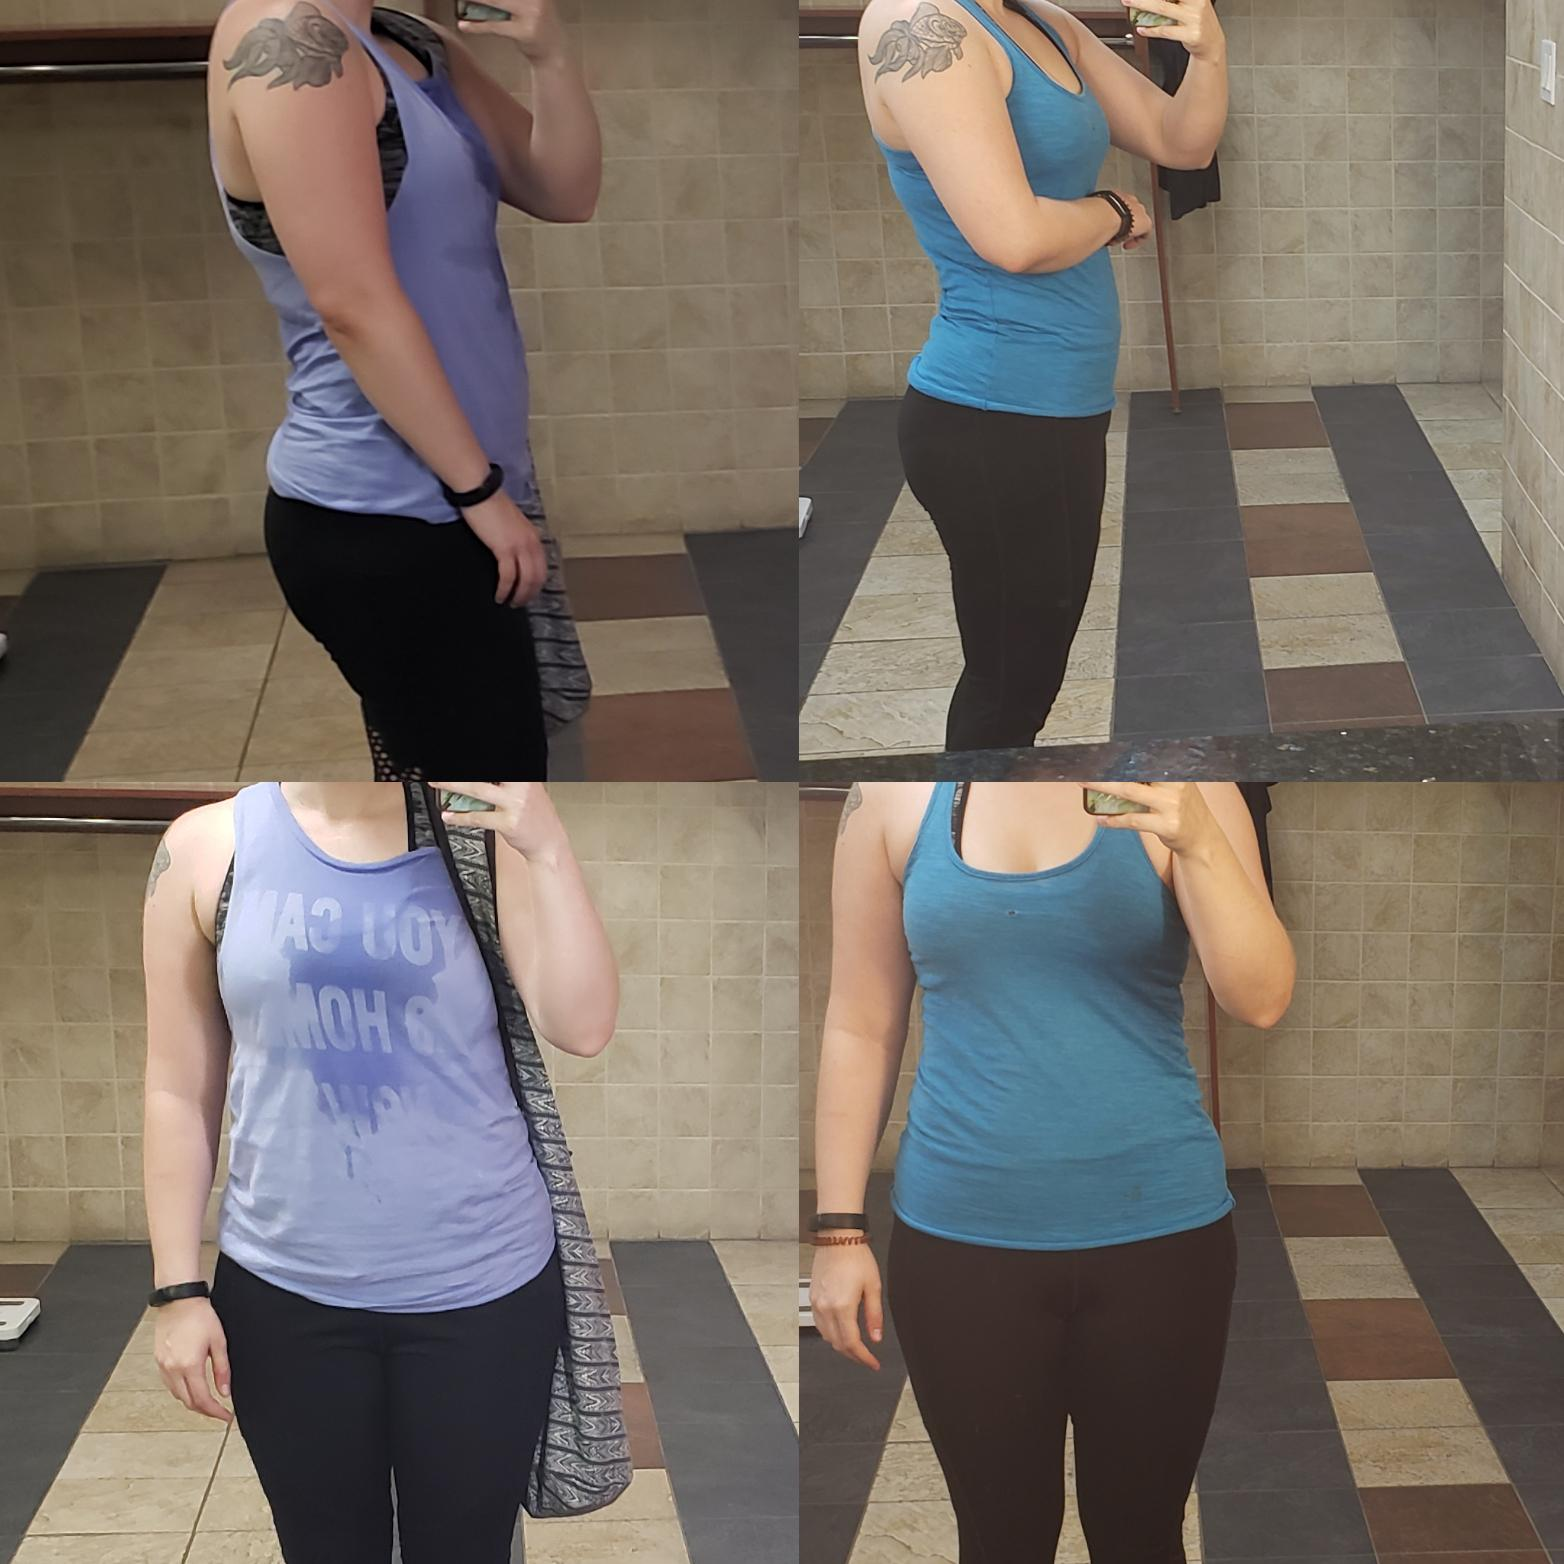 5 feet 5 Female Before and After 10 lbs Fat Loss 163 lbs to 153 lbs